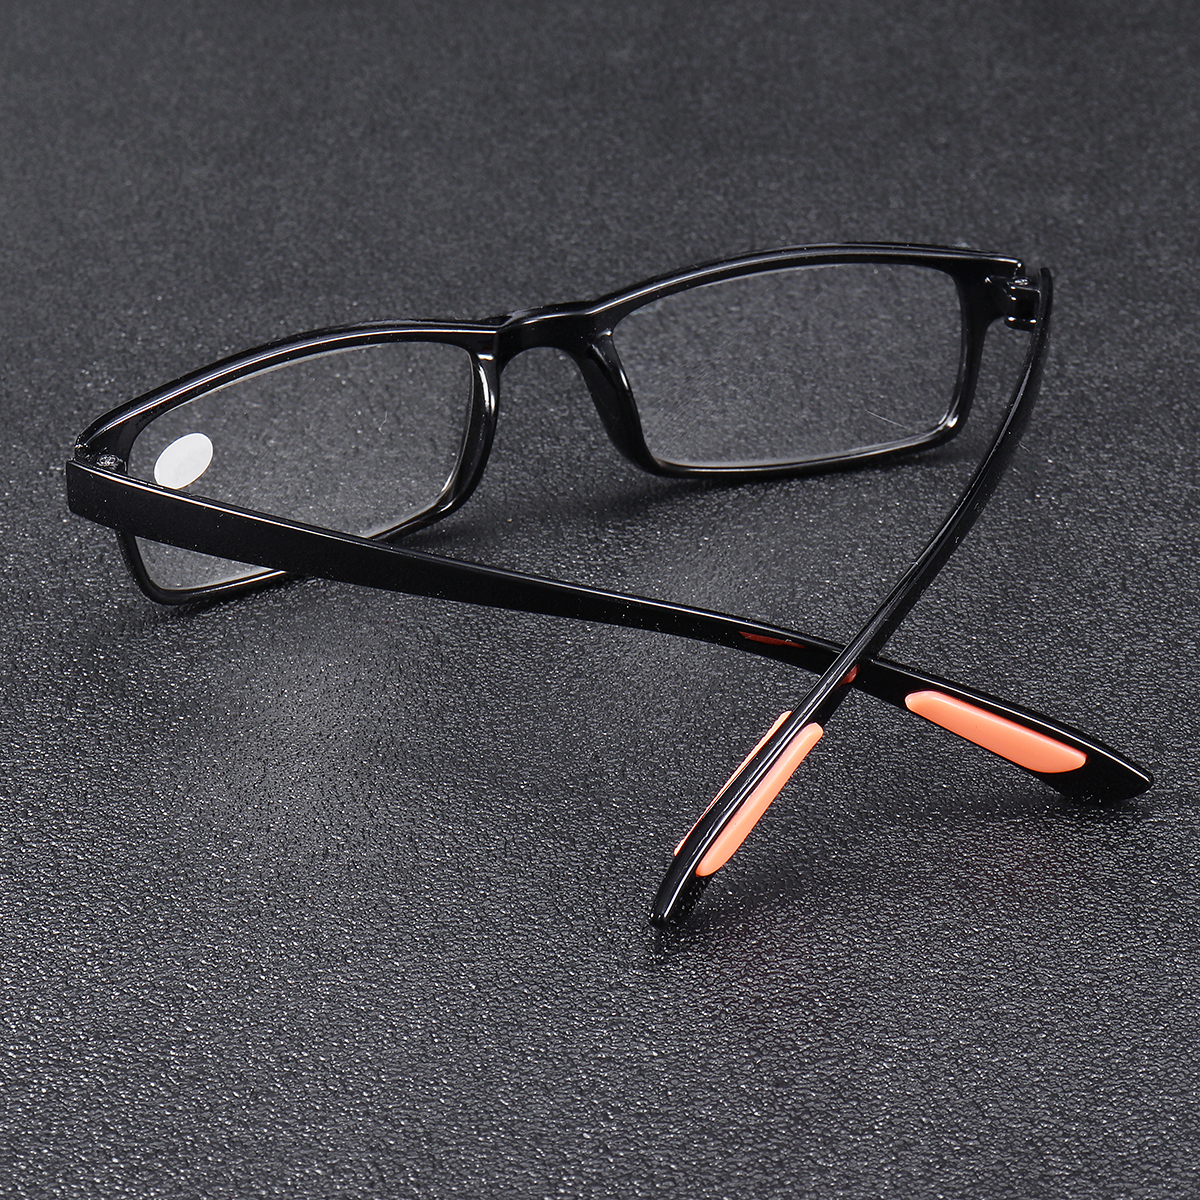 Minleaf TR90 Resin light Weight Black Reading Glasses